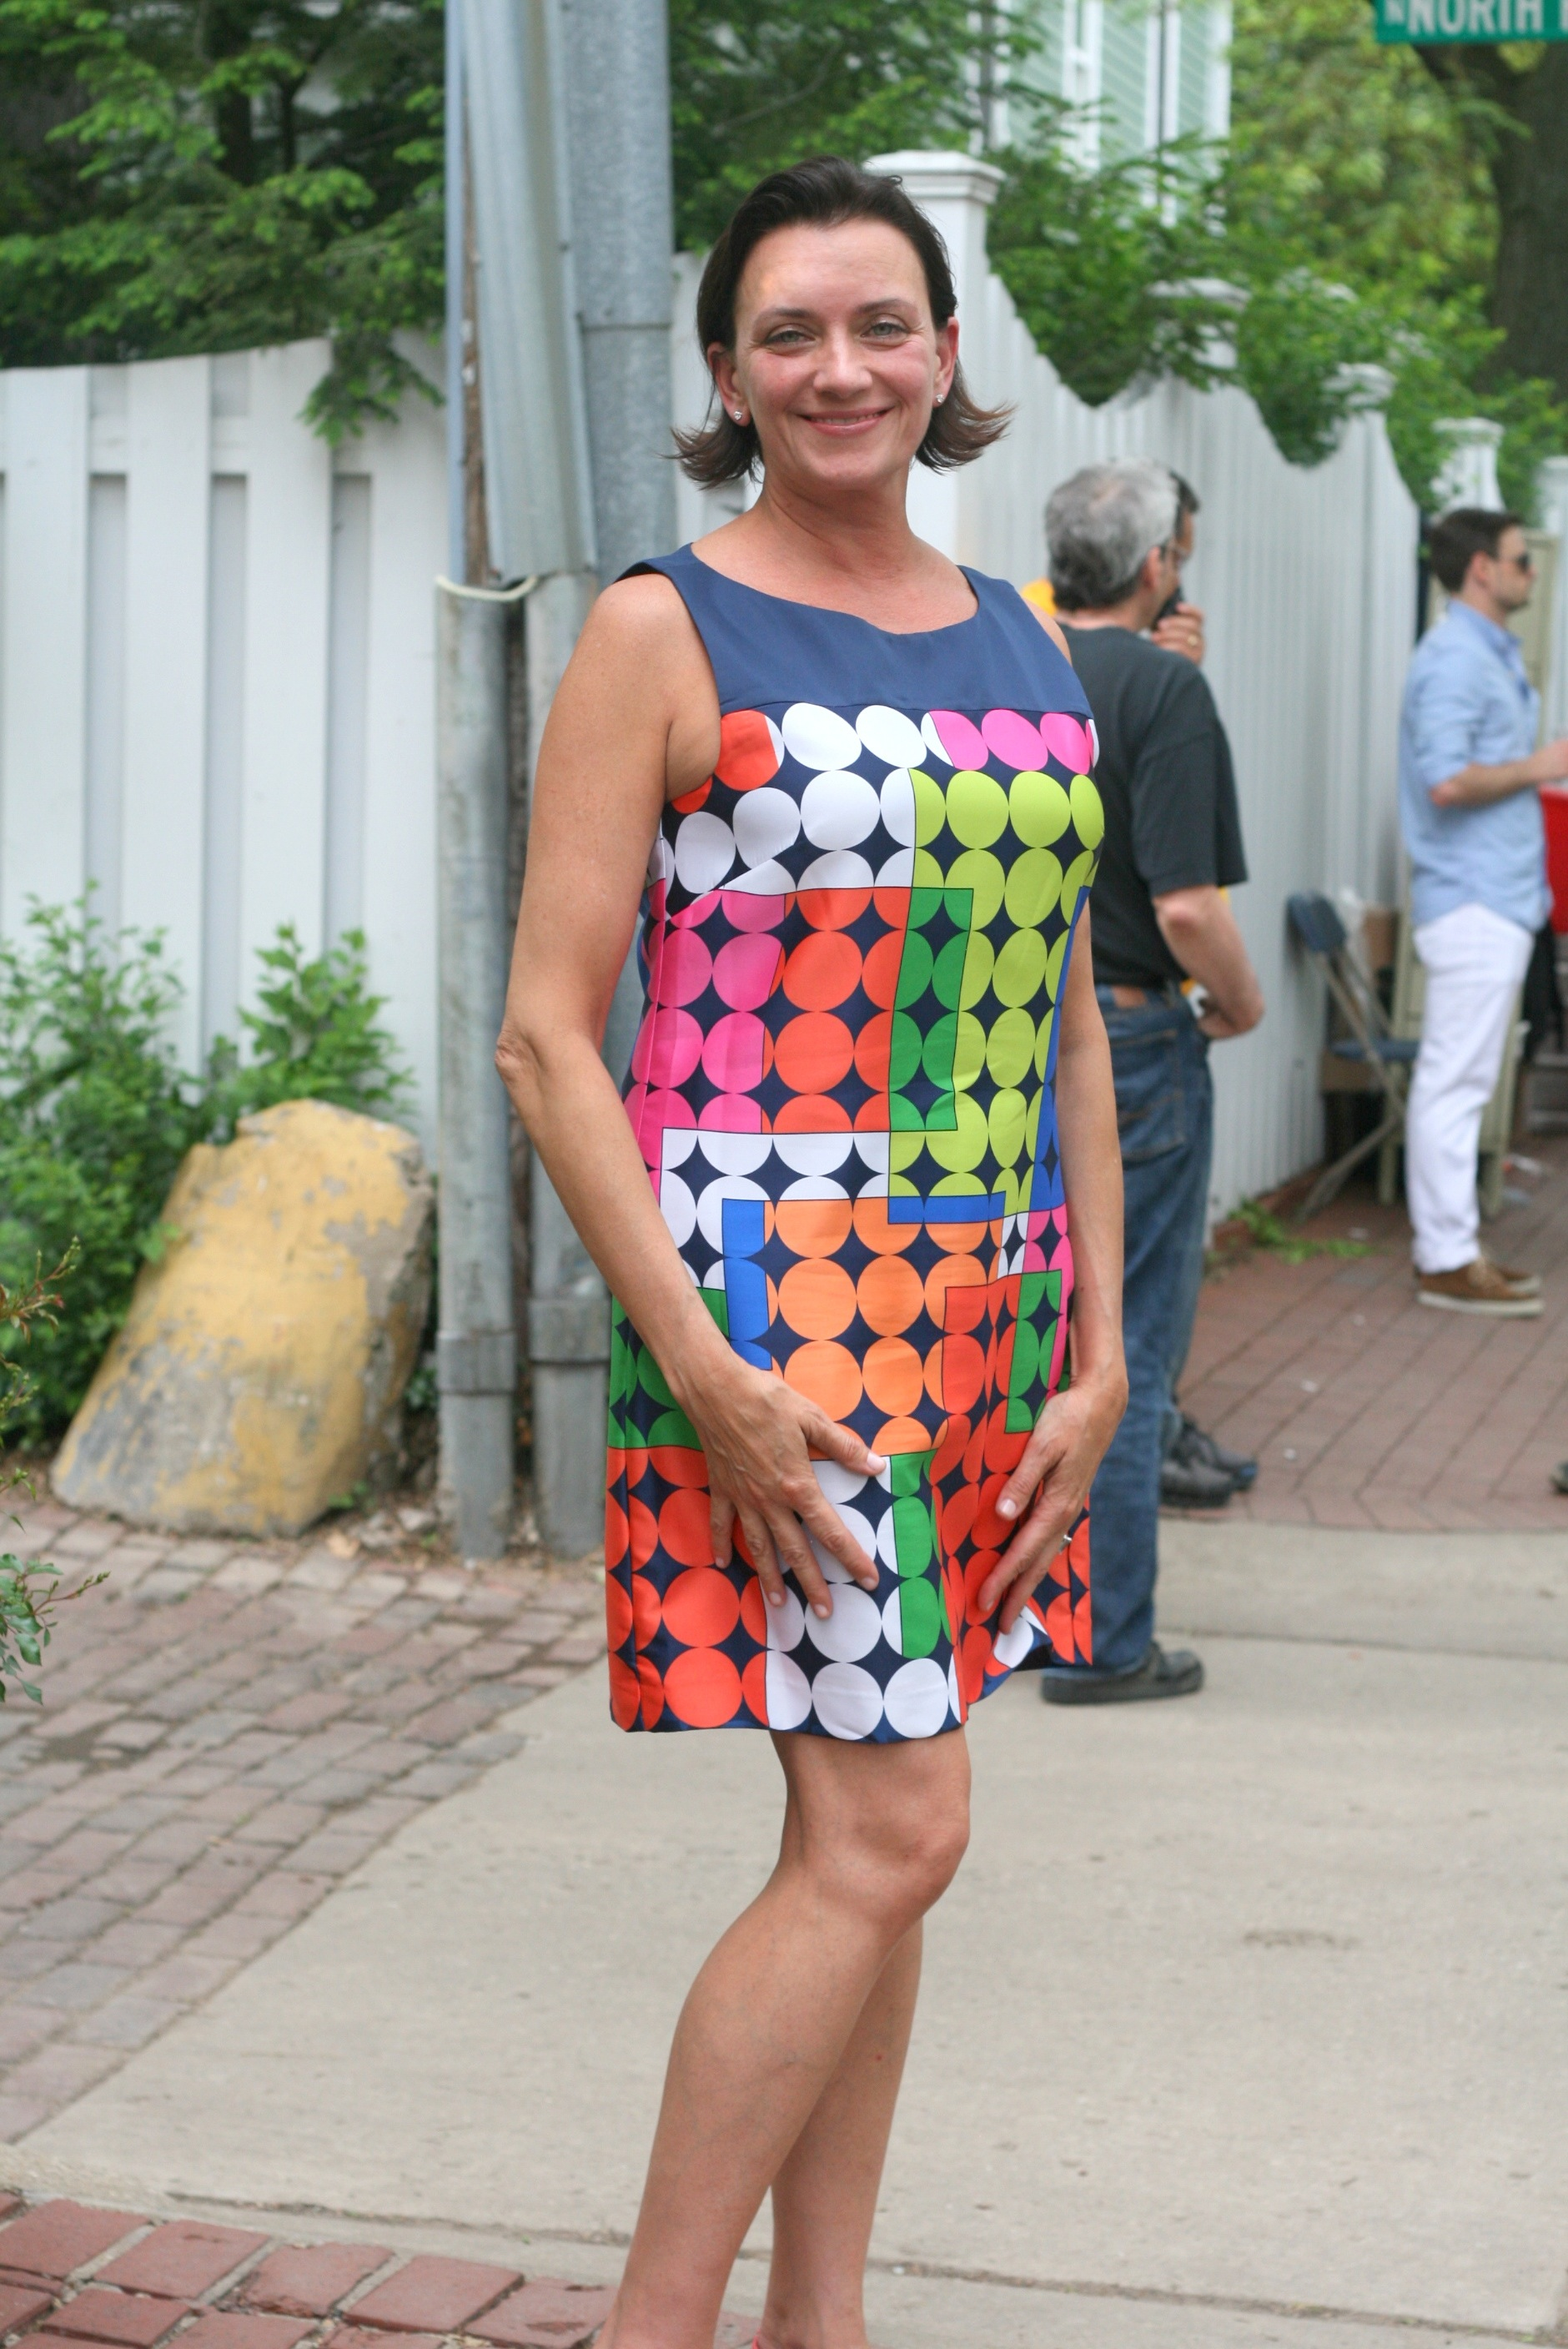 Loving Ms. Lucy's Wogtas's very in colourful 60's-style print dress by Laundry. What a way to celebrate summer & style!